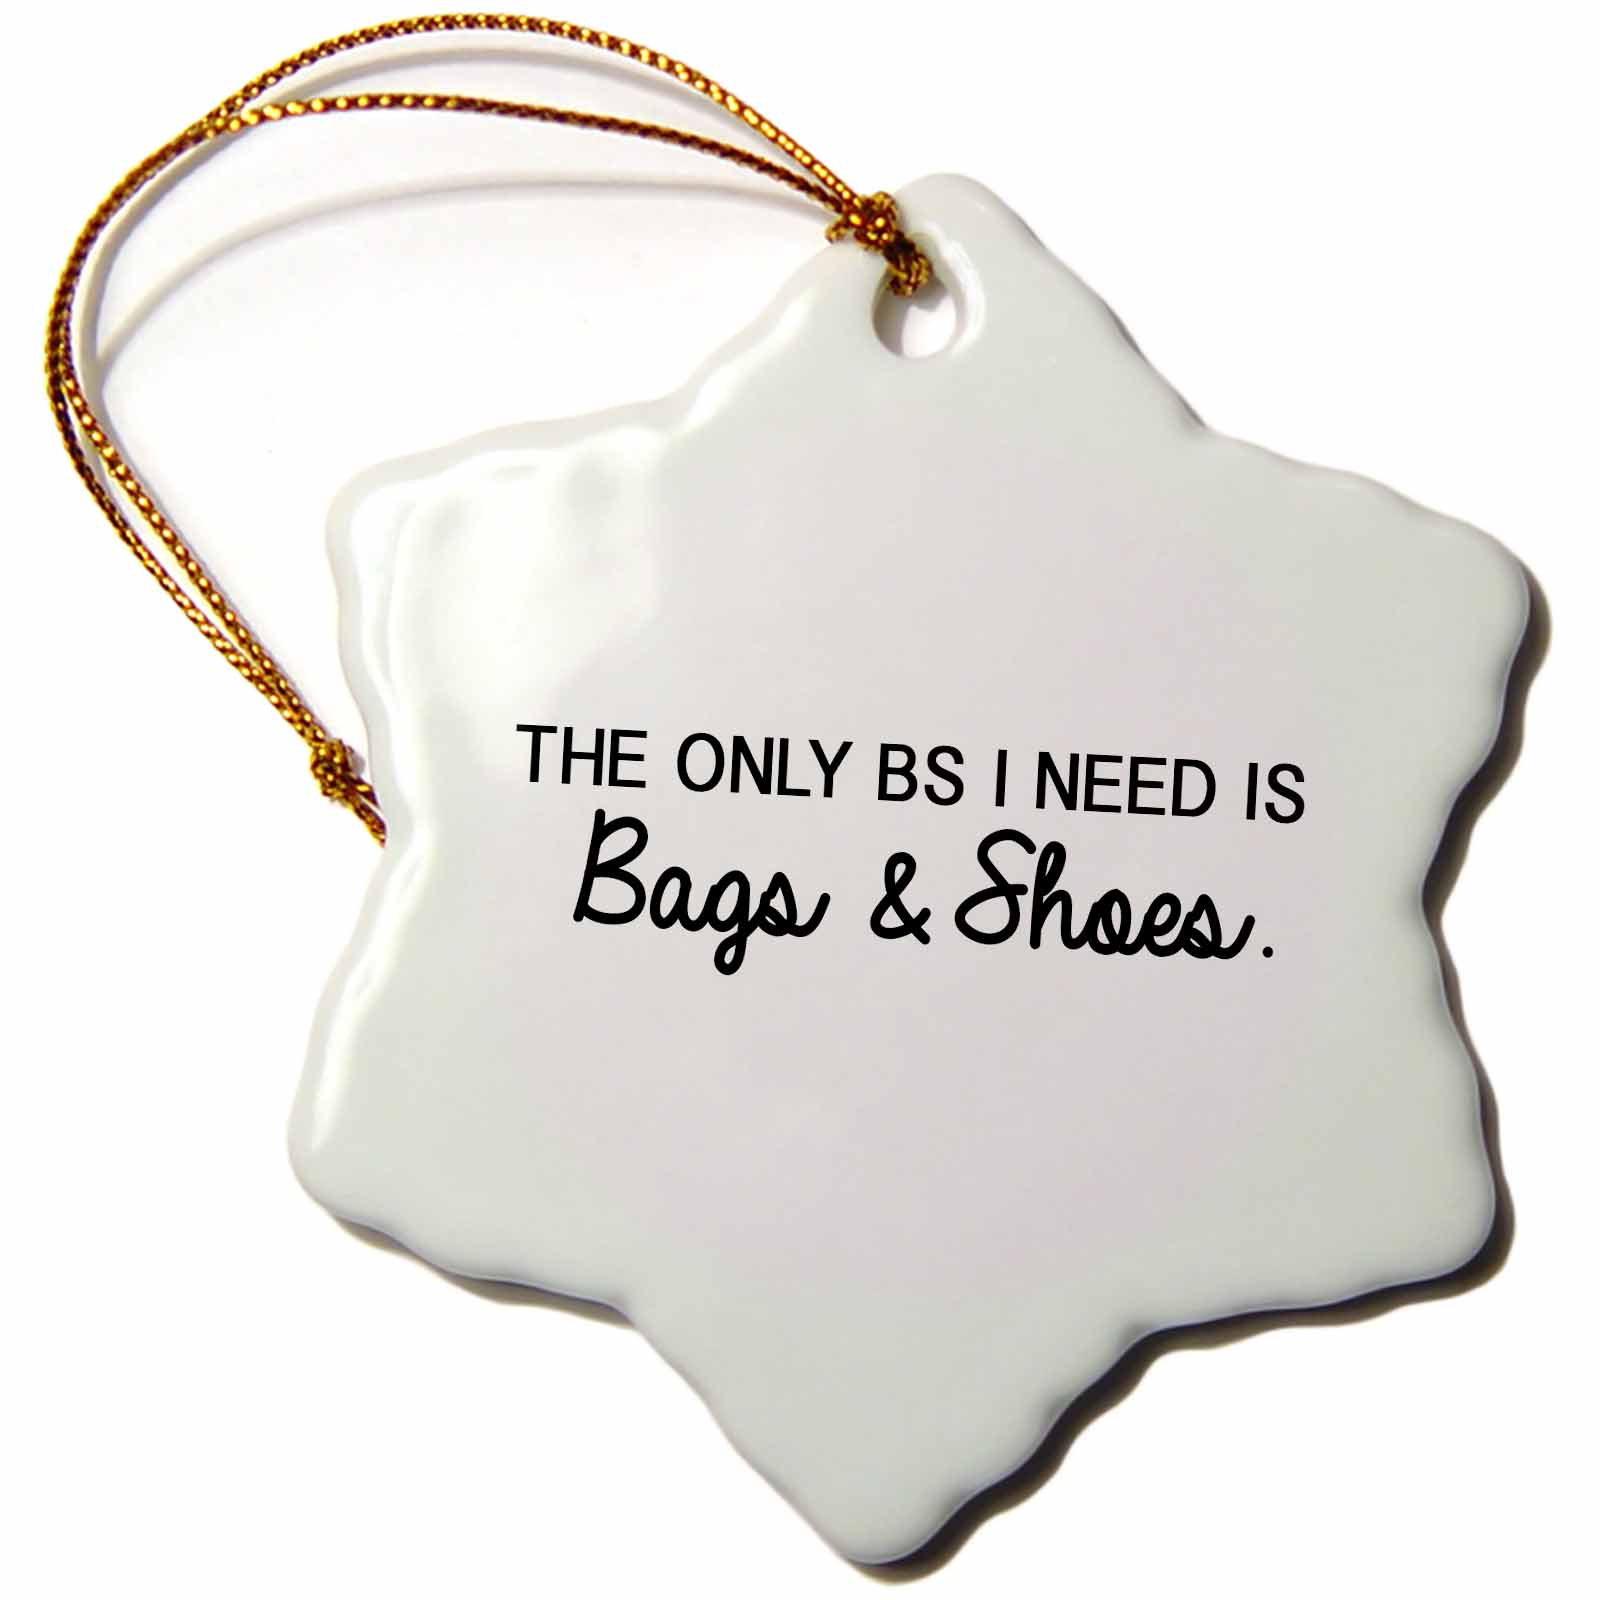 3dRose THE ONLY BS I NEED IS BAGS AND SHOES. - Snowflake Ornament, 3-inch